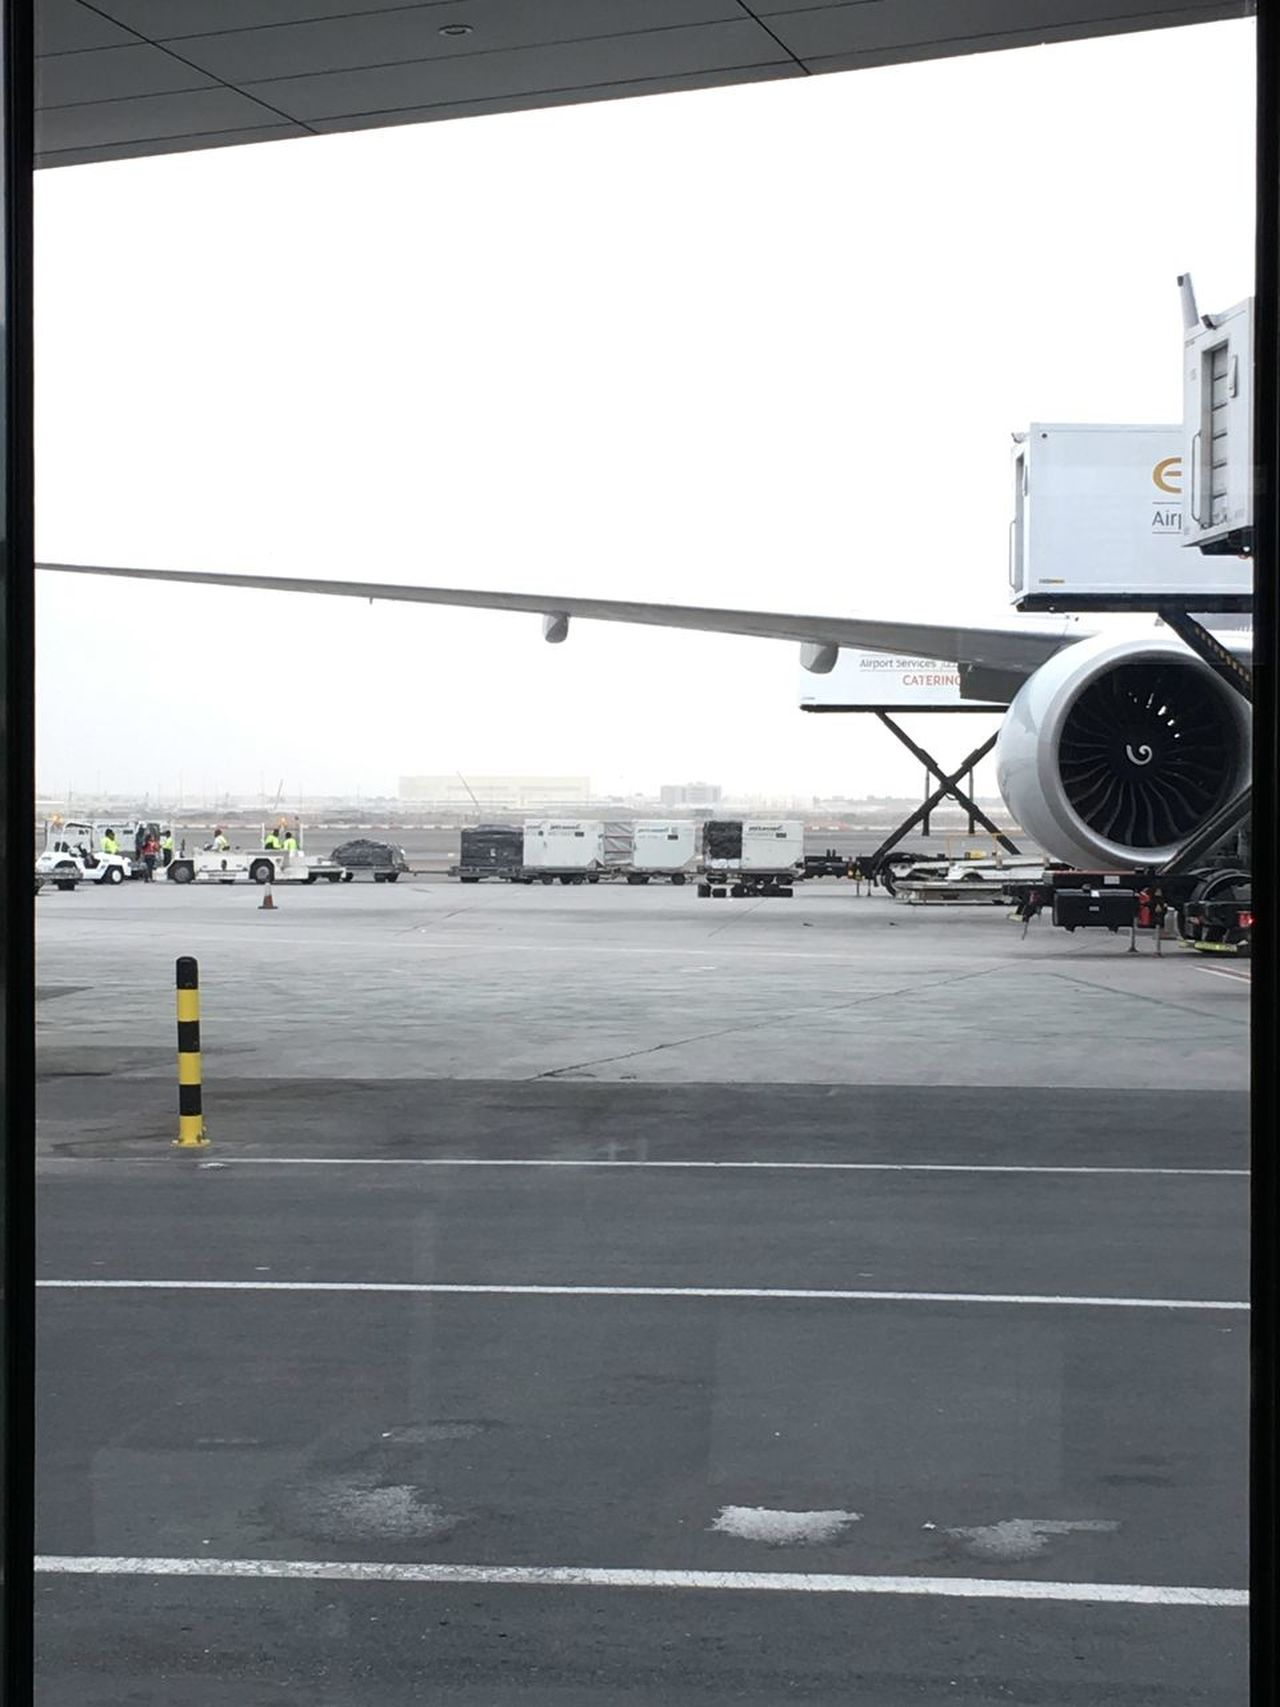 Aerospace Industry Air Vehicle Airplane Airport Airport Runway Day Mode Of Transport No People Outdoors Passenger Boarding Bridge Transportation Travel